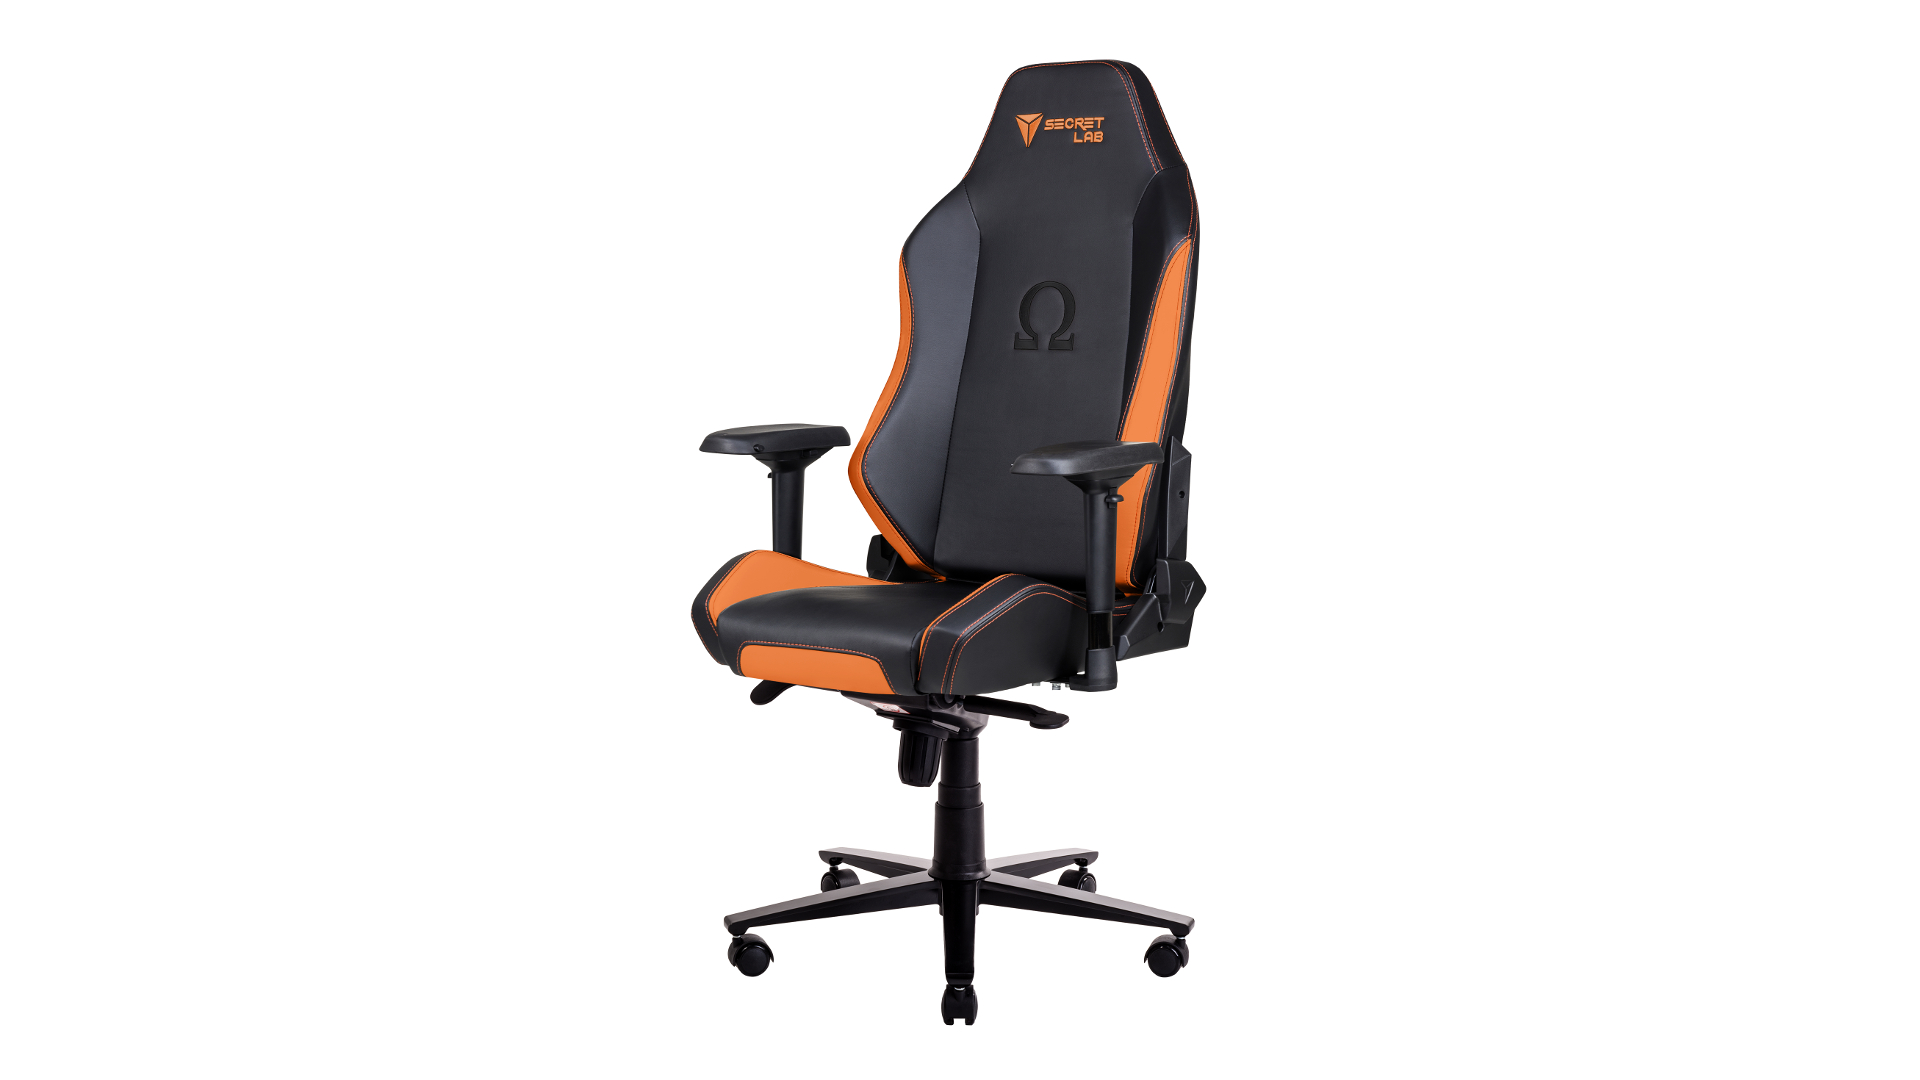 Luxury Secretlab us fy new gaming chairs aim to be the ultimate PC thrones TechRadar